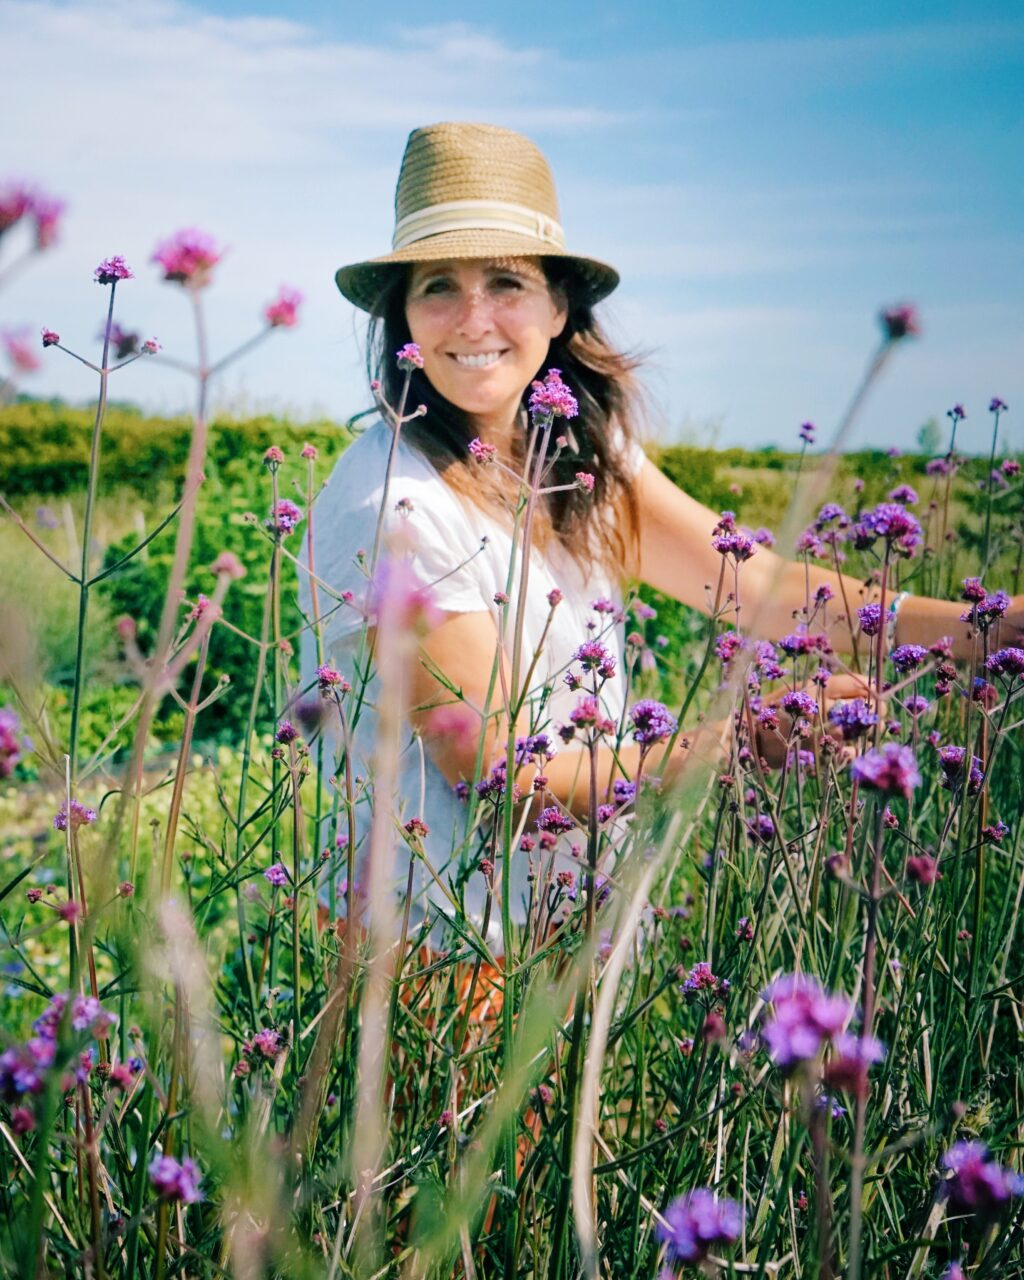 Amber Partner cutting in her flower fields at Howe Farm Flowers through a sea of purple verbena against a blue sky